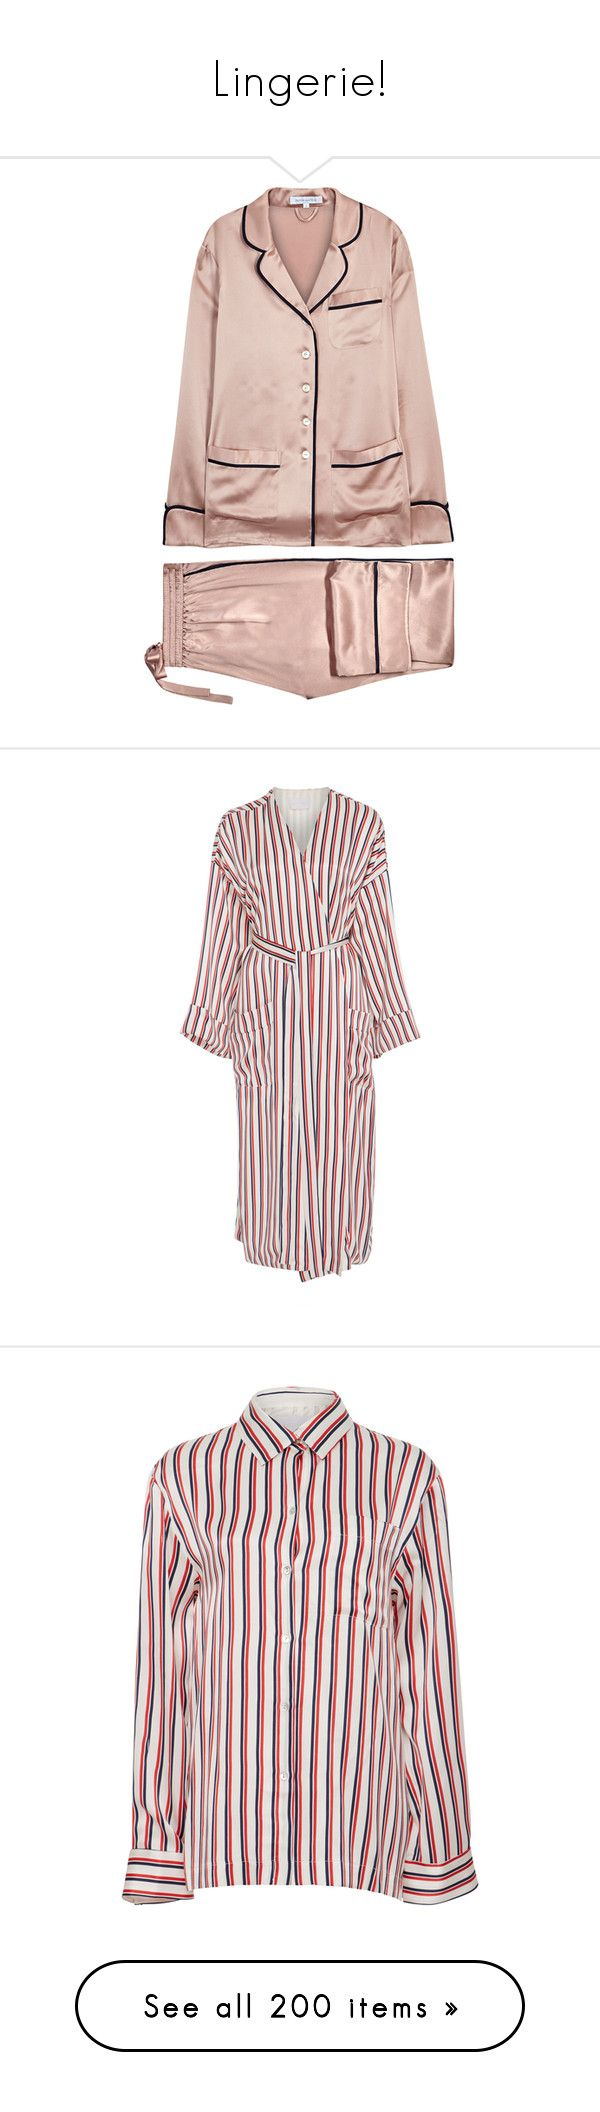 """""""Lingerie!"""" by joanna-tabakou ❤ liked on Polyvore featuring intimates, sleepwear, pajamas, silk pyjamas, silk pajamas, silk sleepwear, silk pajama set, silk pjs, robes and multi"""